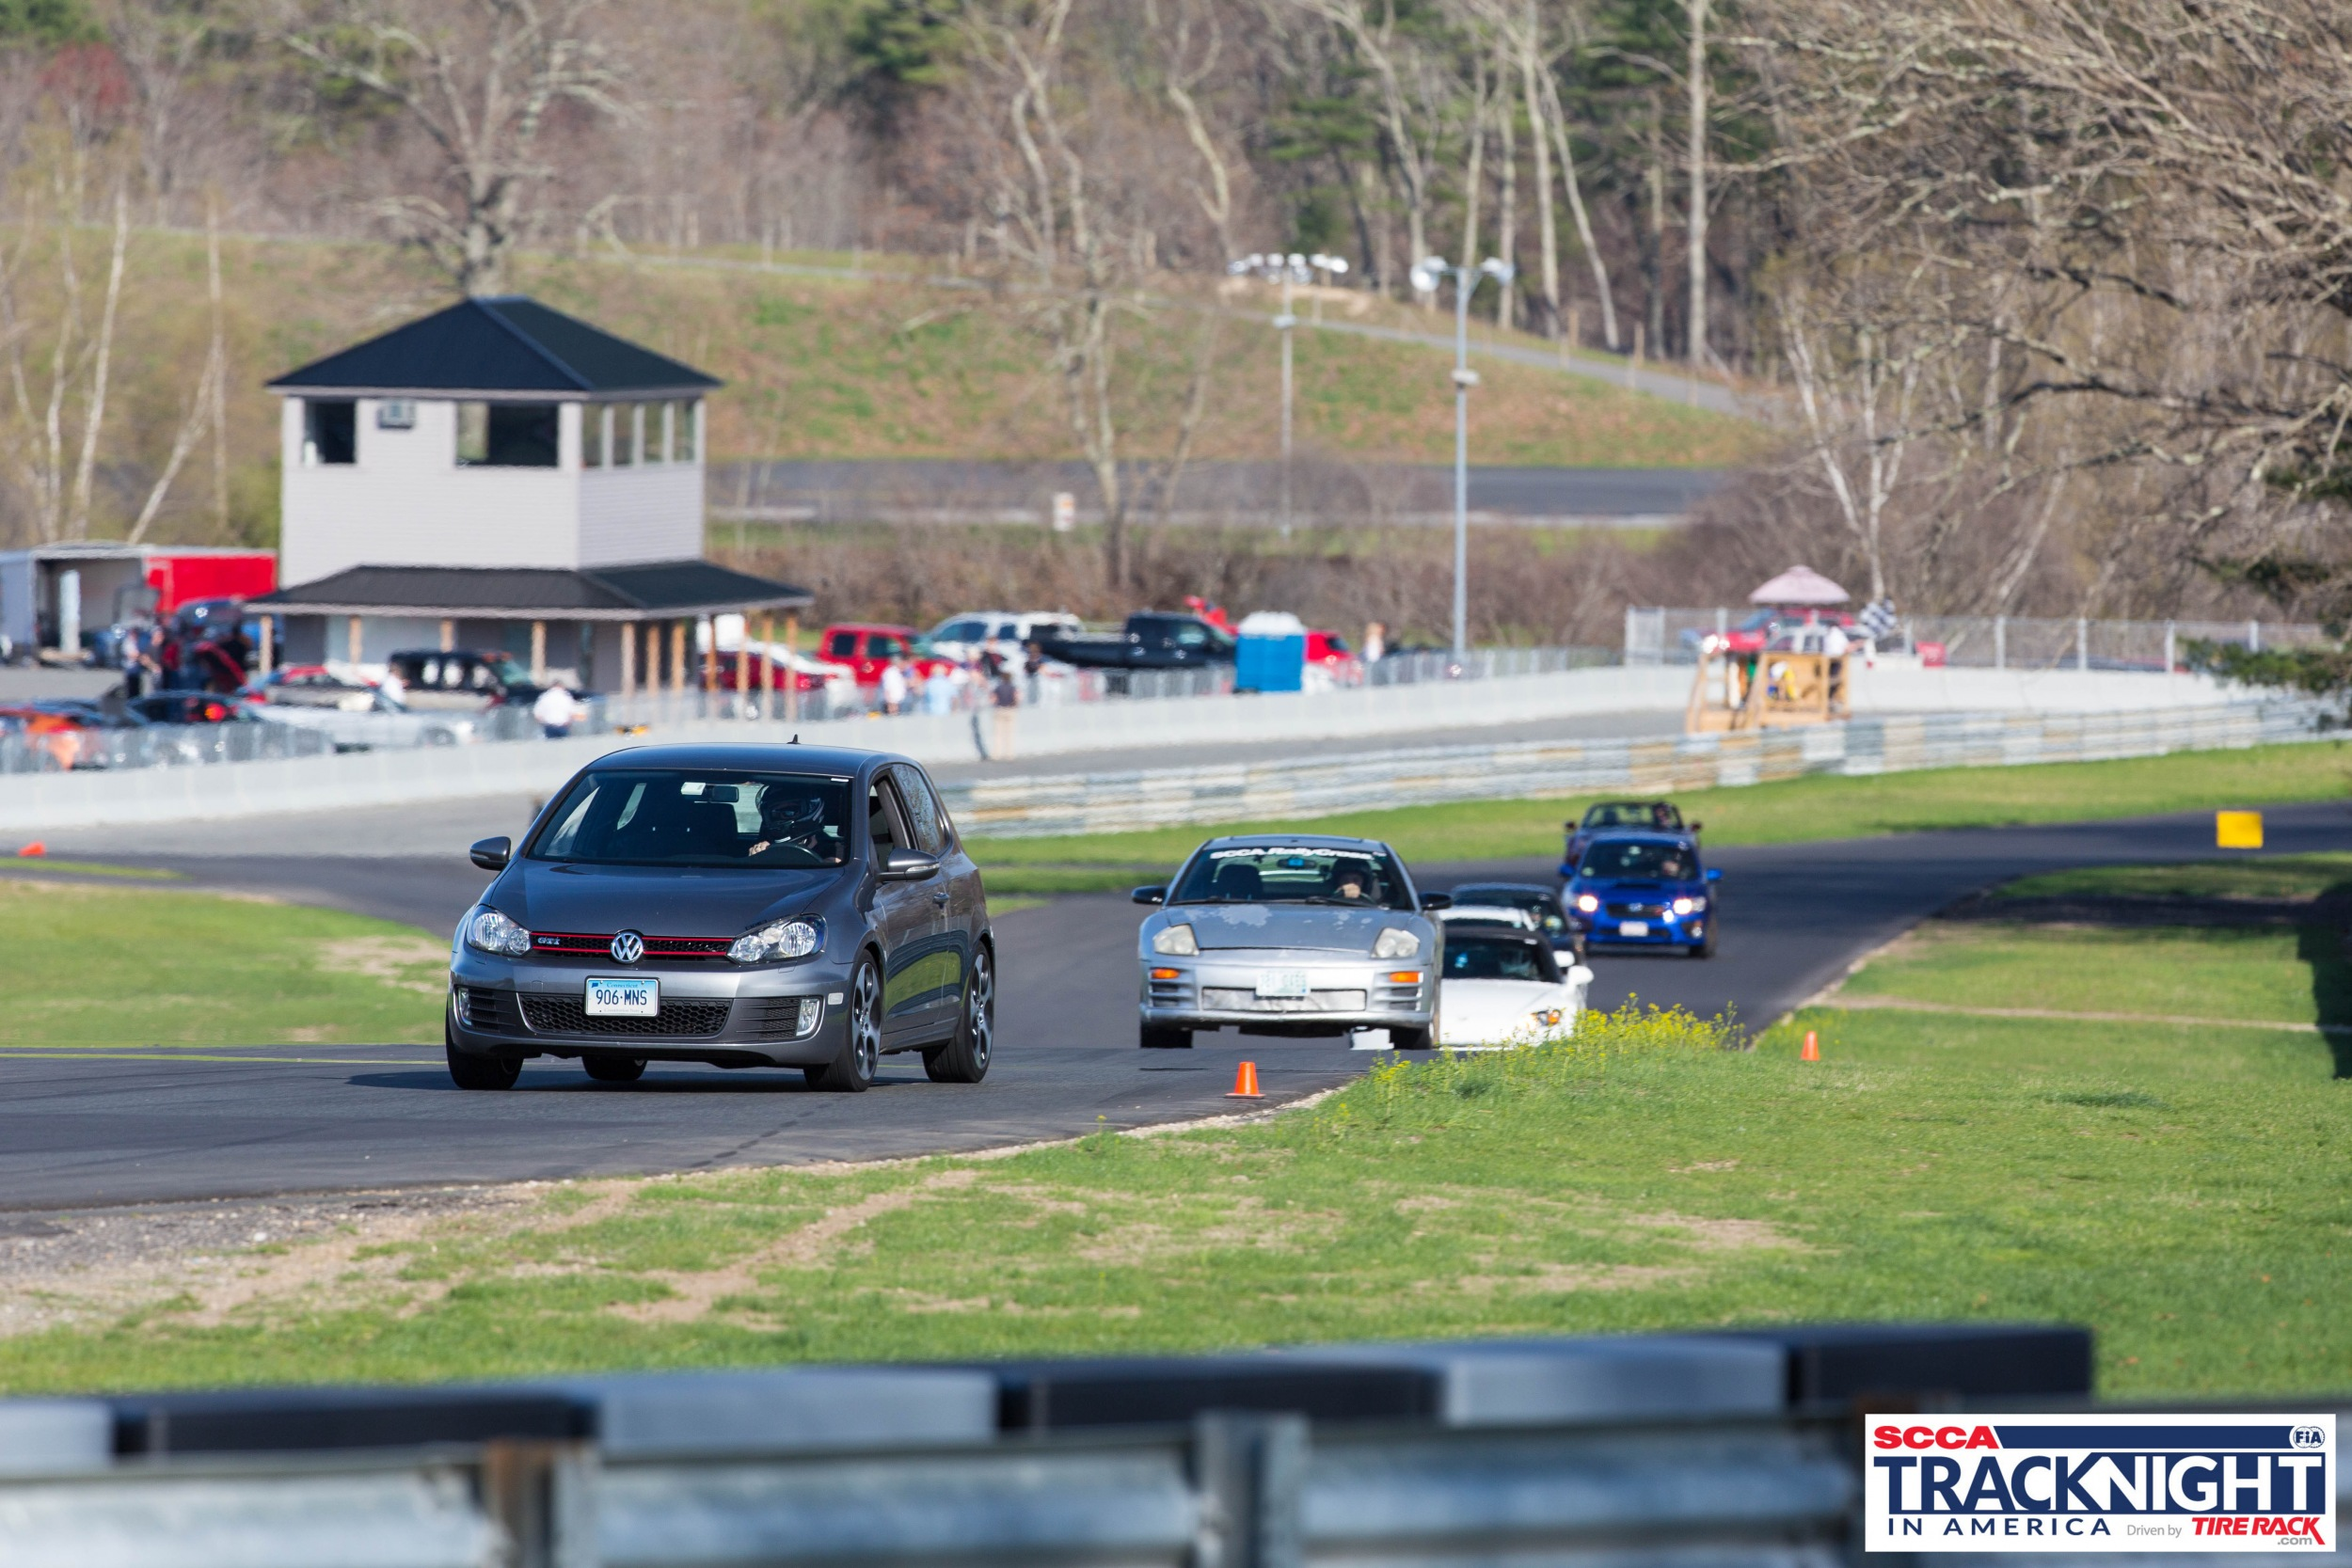 SCCA_Track_Night_In_America_TSMP_34637